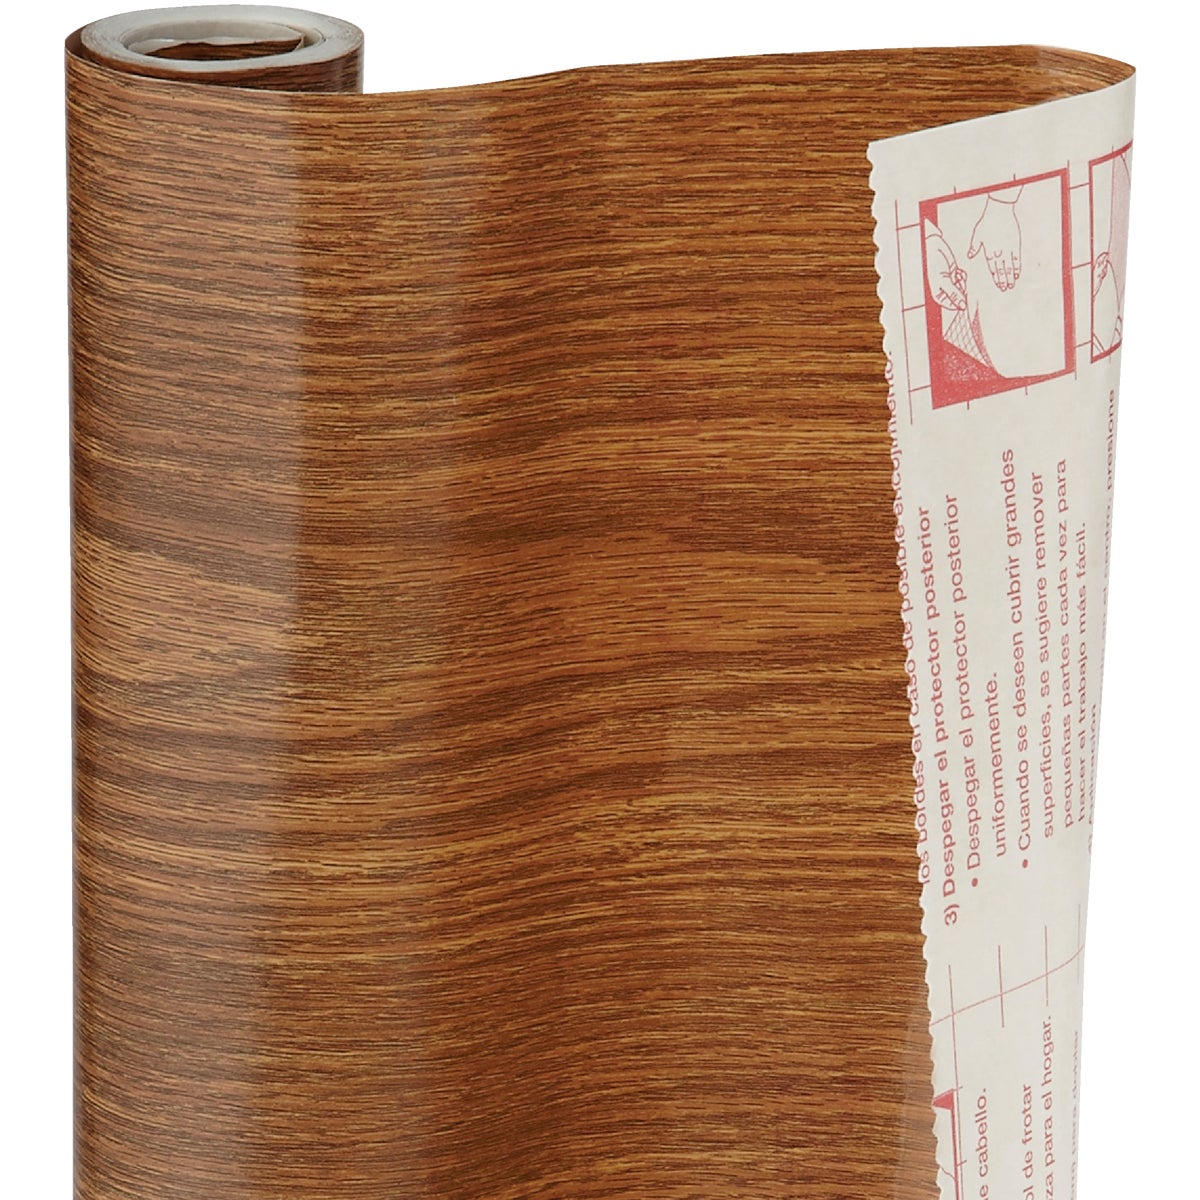 HONEY OAK CONTACT PAPER - 15F-C6B81-01 by Kittrich Corp